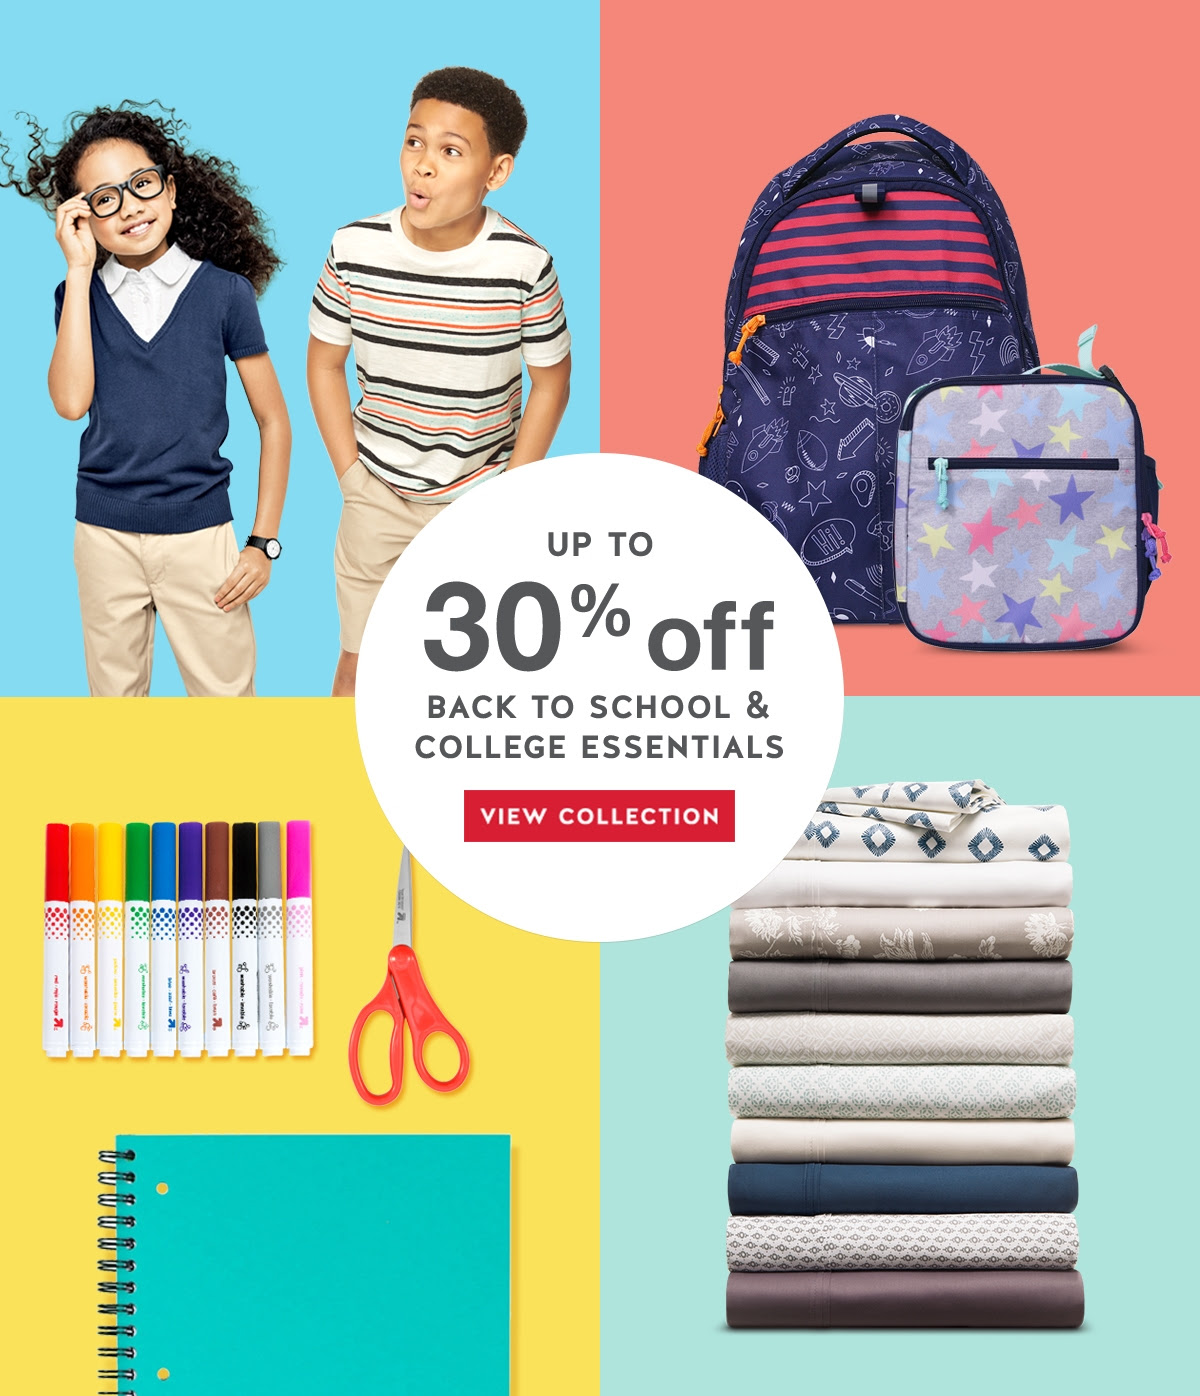 Up to 30% off back to school and college essentials. View collection.